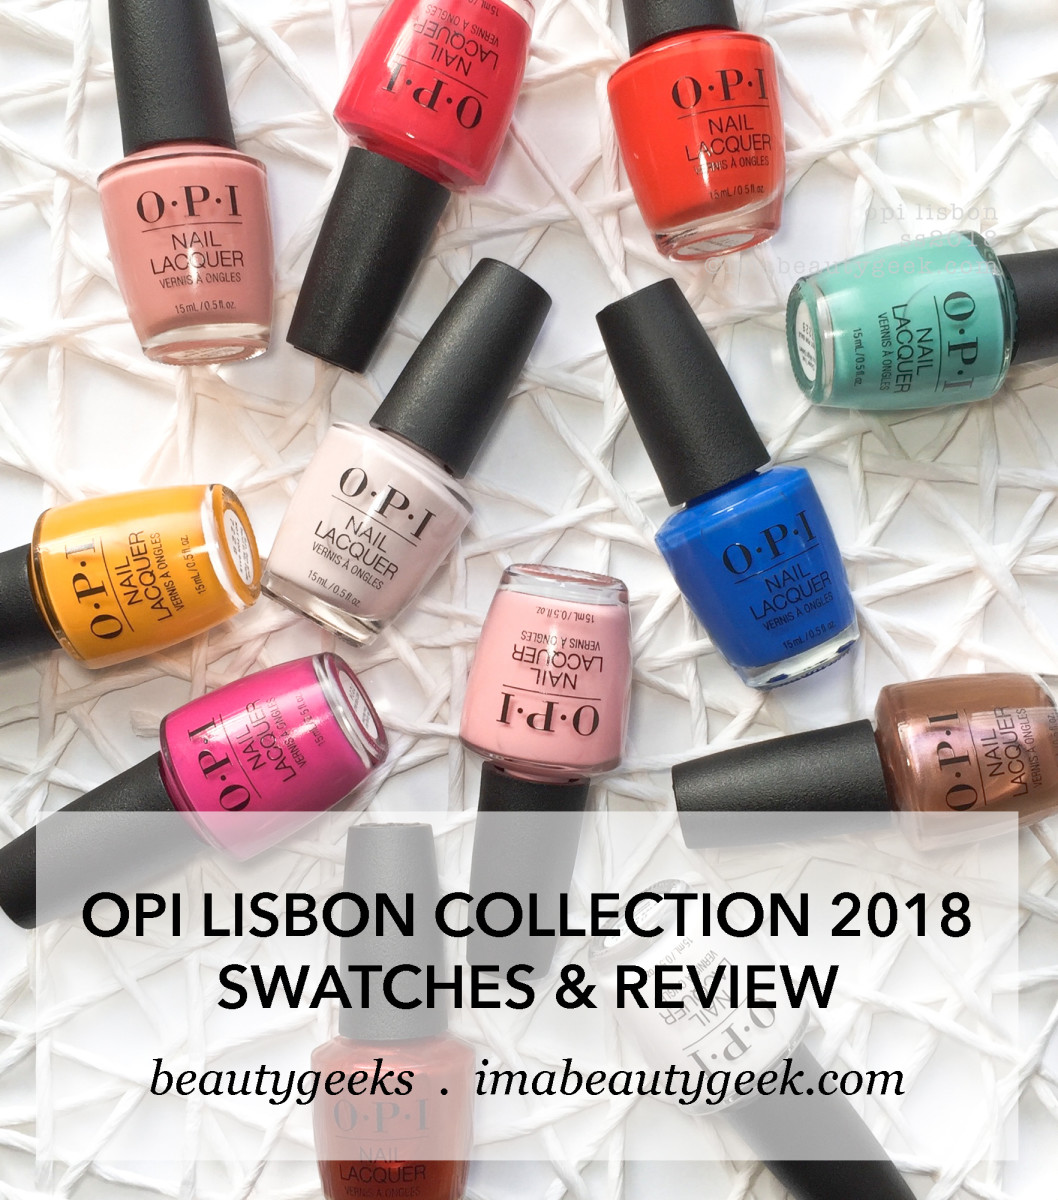 OPI Lisbon Collection Swatches Review Beautygeeks SS 2018